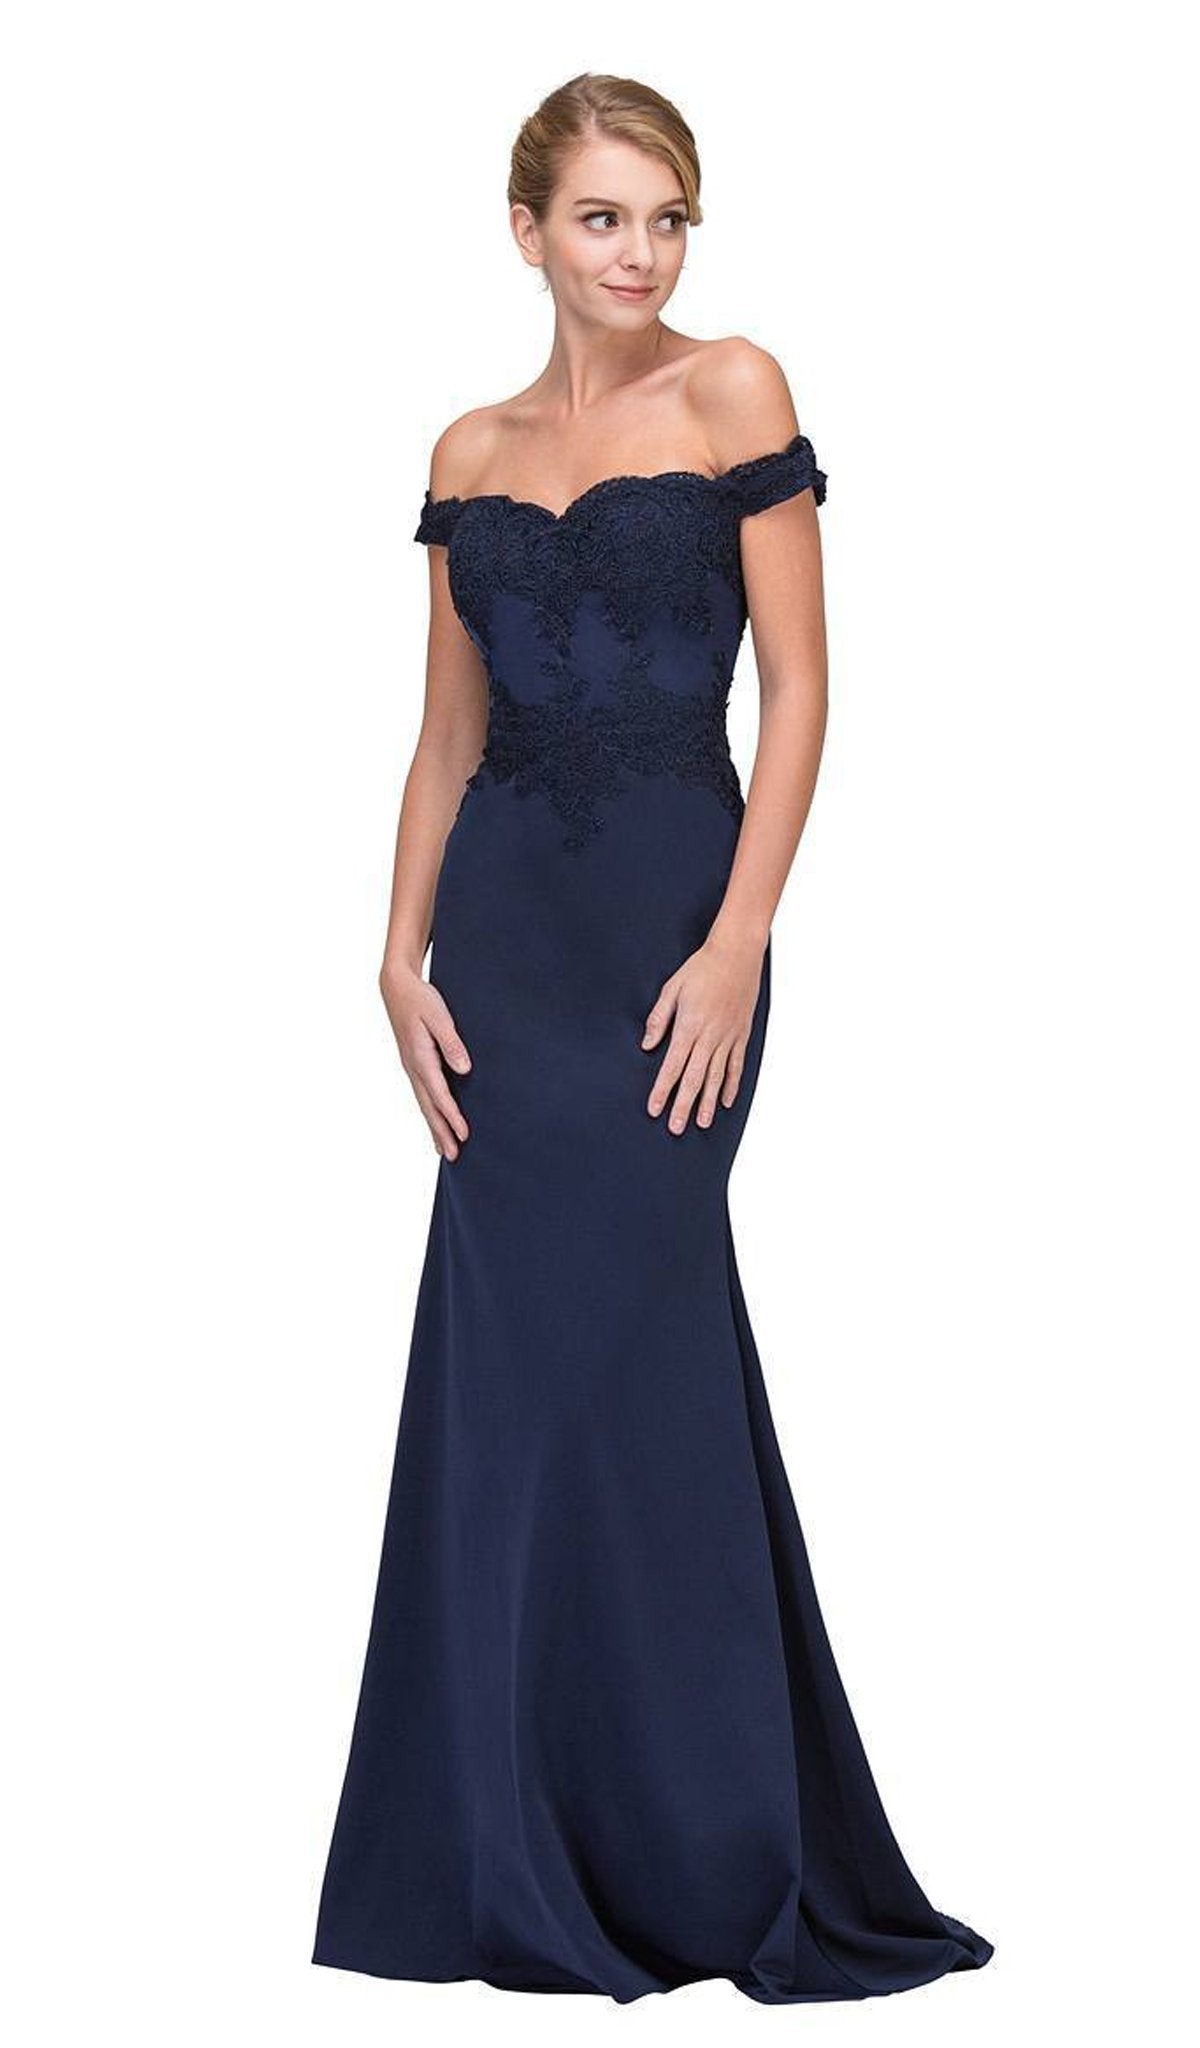 Eureka Fashion - Lace Applique Off Shoulder Jersey Mermaid Gown In Blue